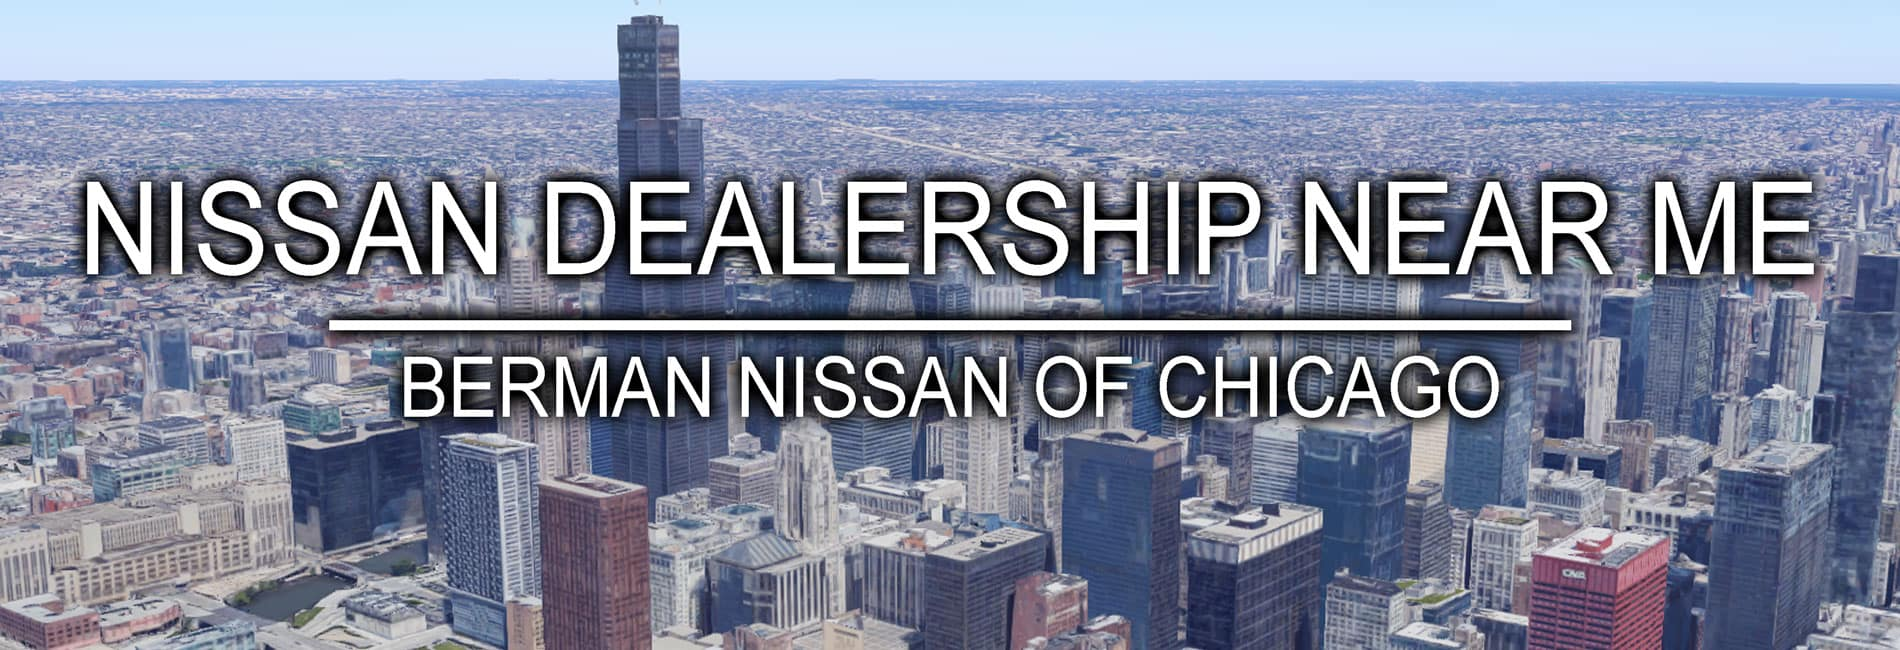 Nissan Dealership Near Me | Berman Nissan of Chicago